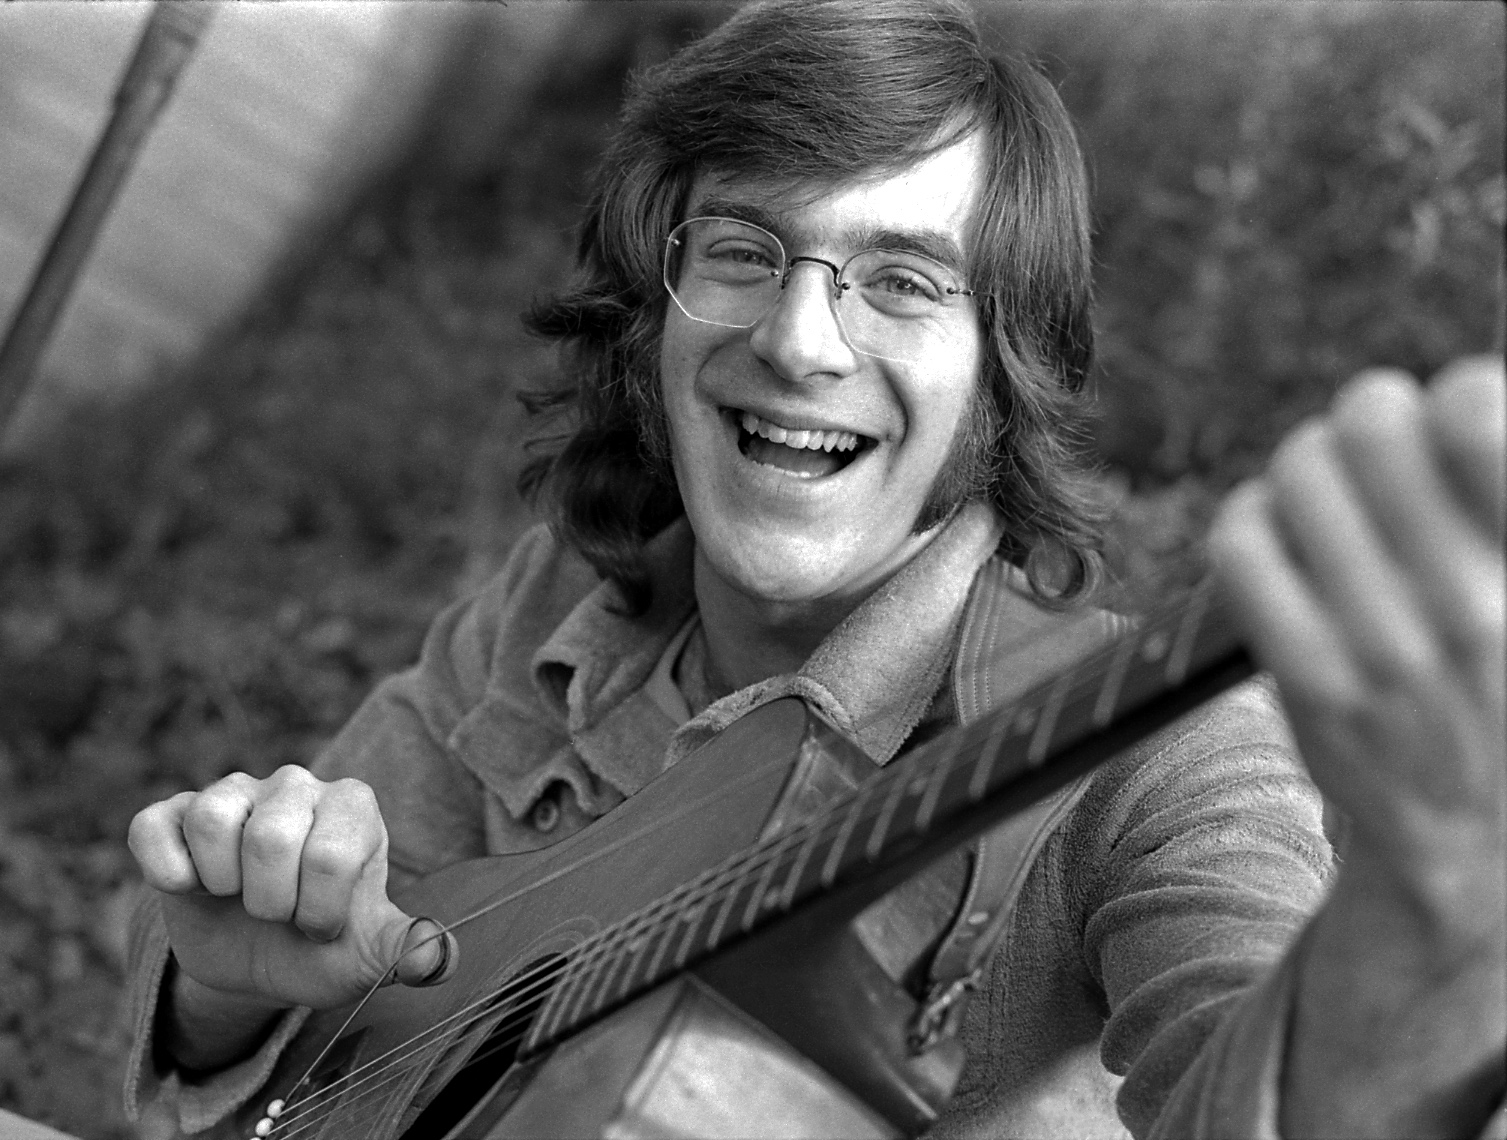 New York City, New York, USA, 1944-03-17, John Sebastian